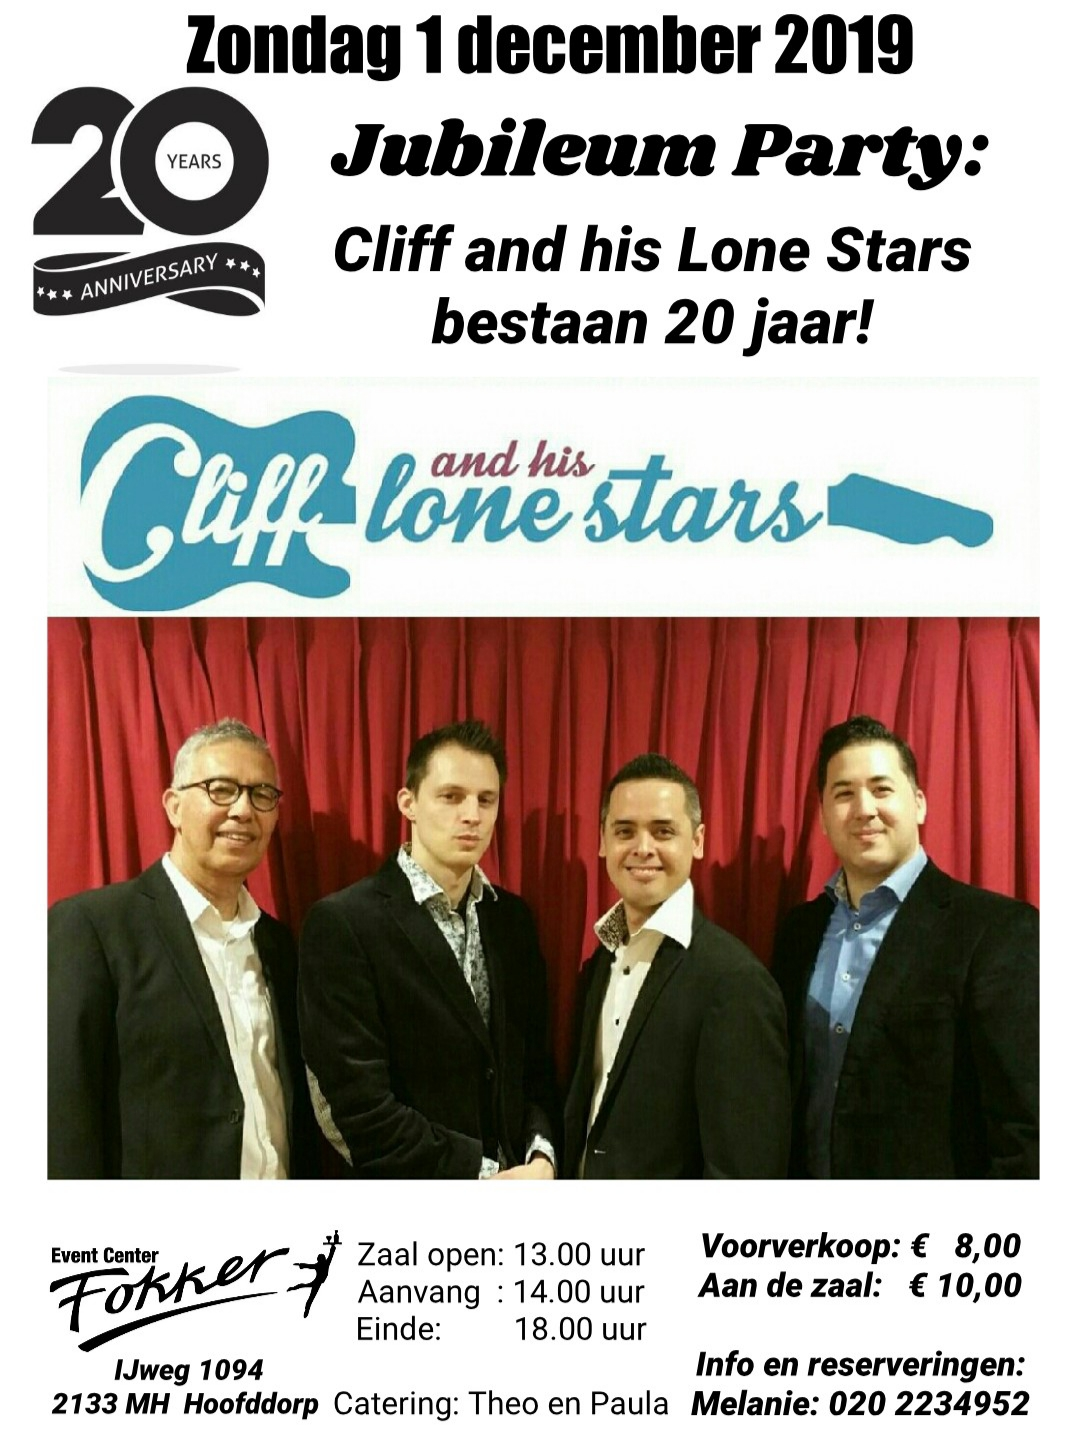 Jubileum Party Cliff and his Lone Stars - 20 jaar